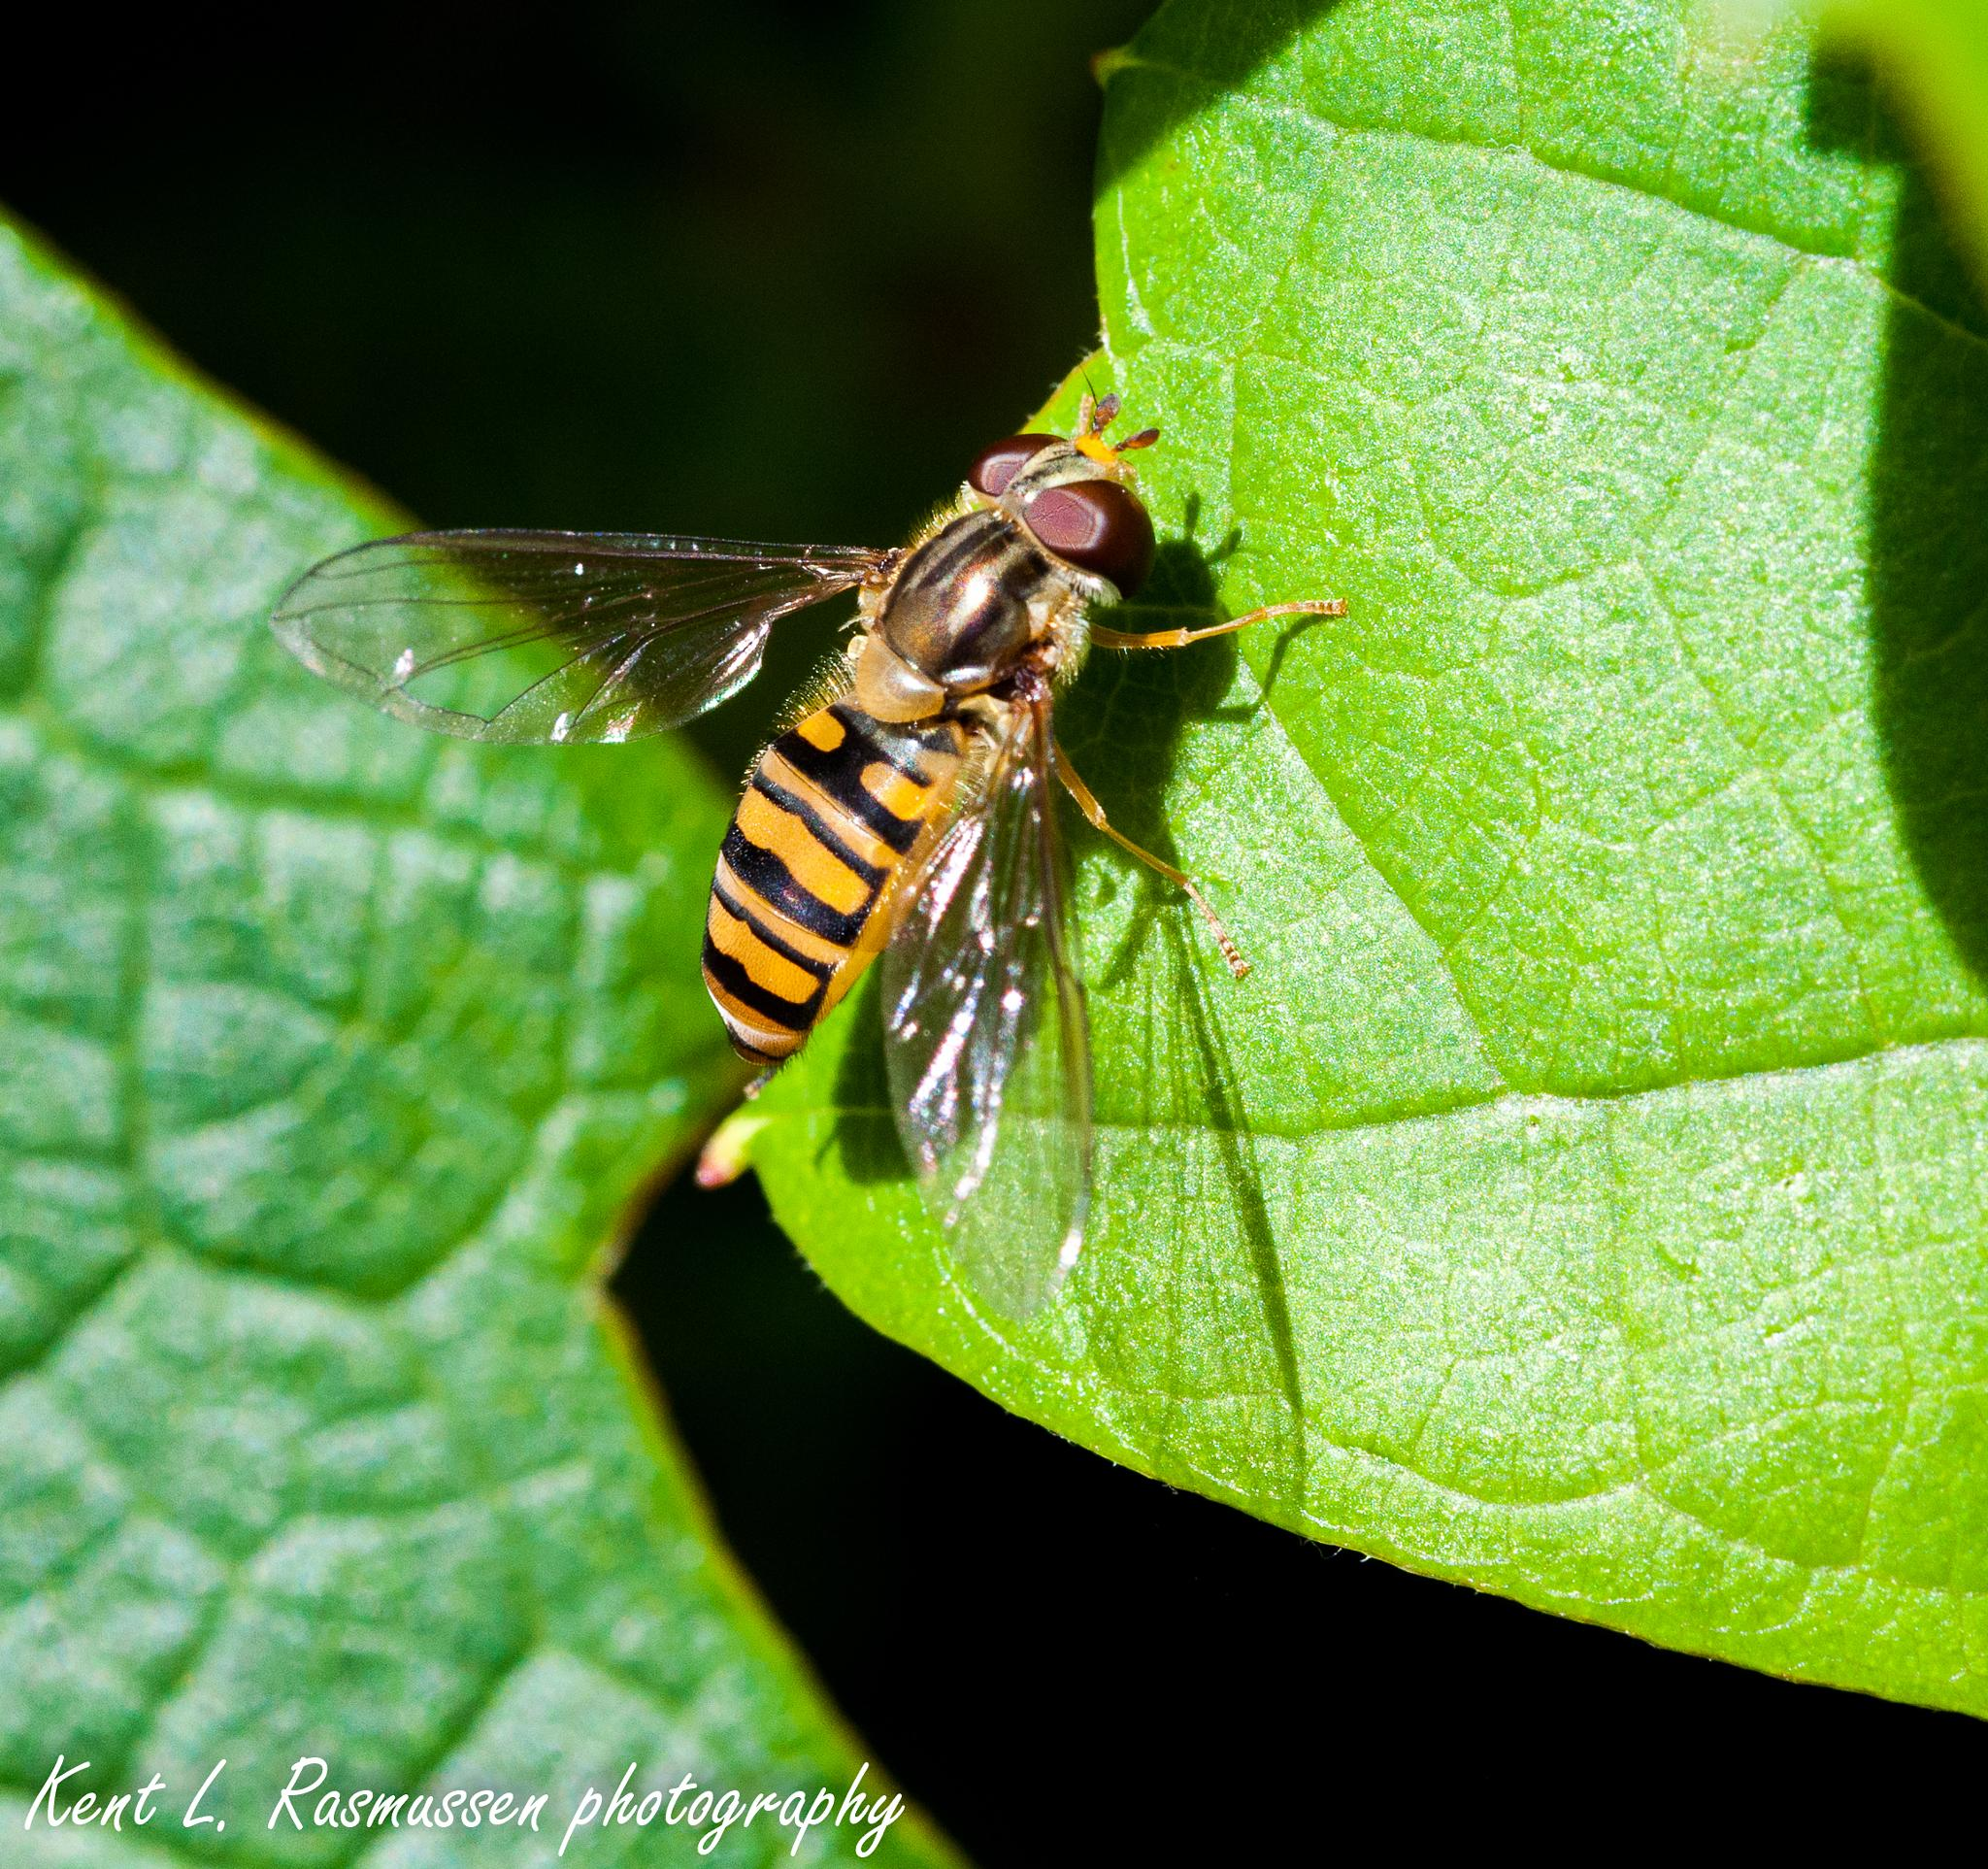 Fake wasp on a leaf by Kent L. Rasmussen